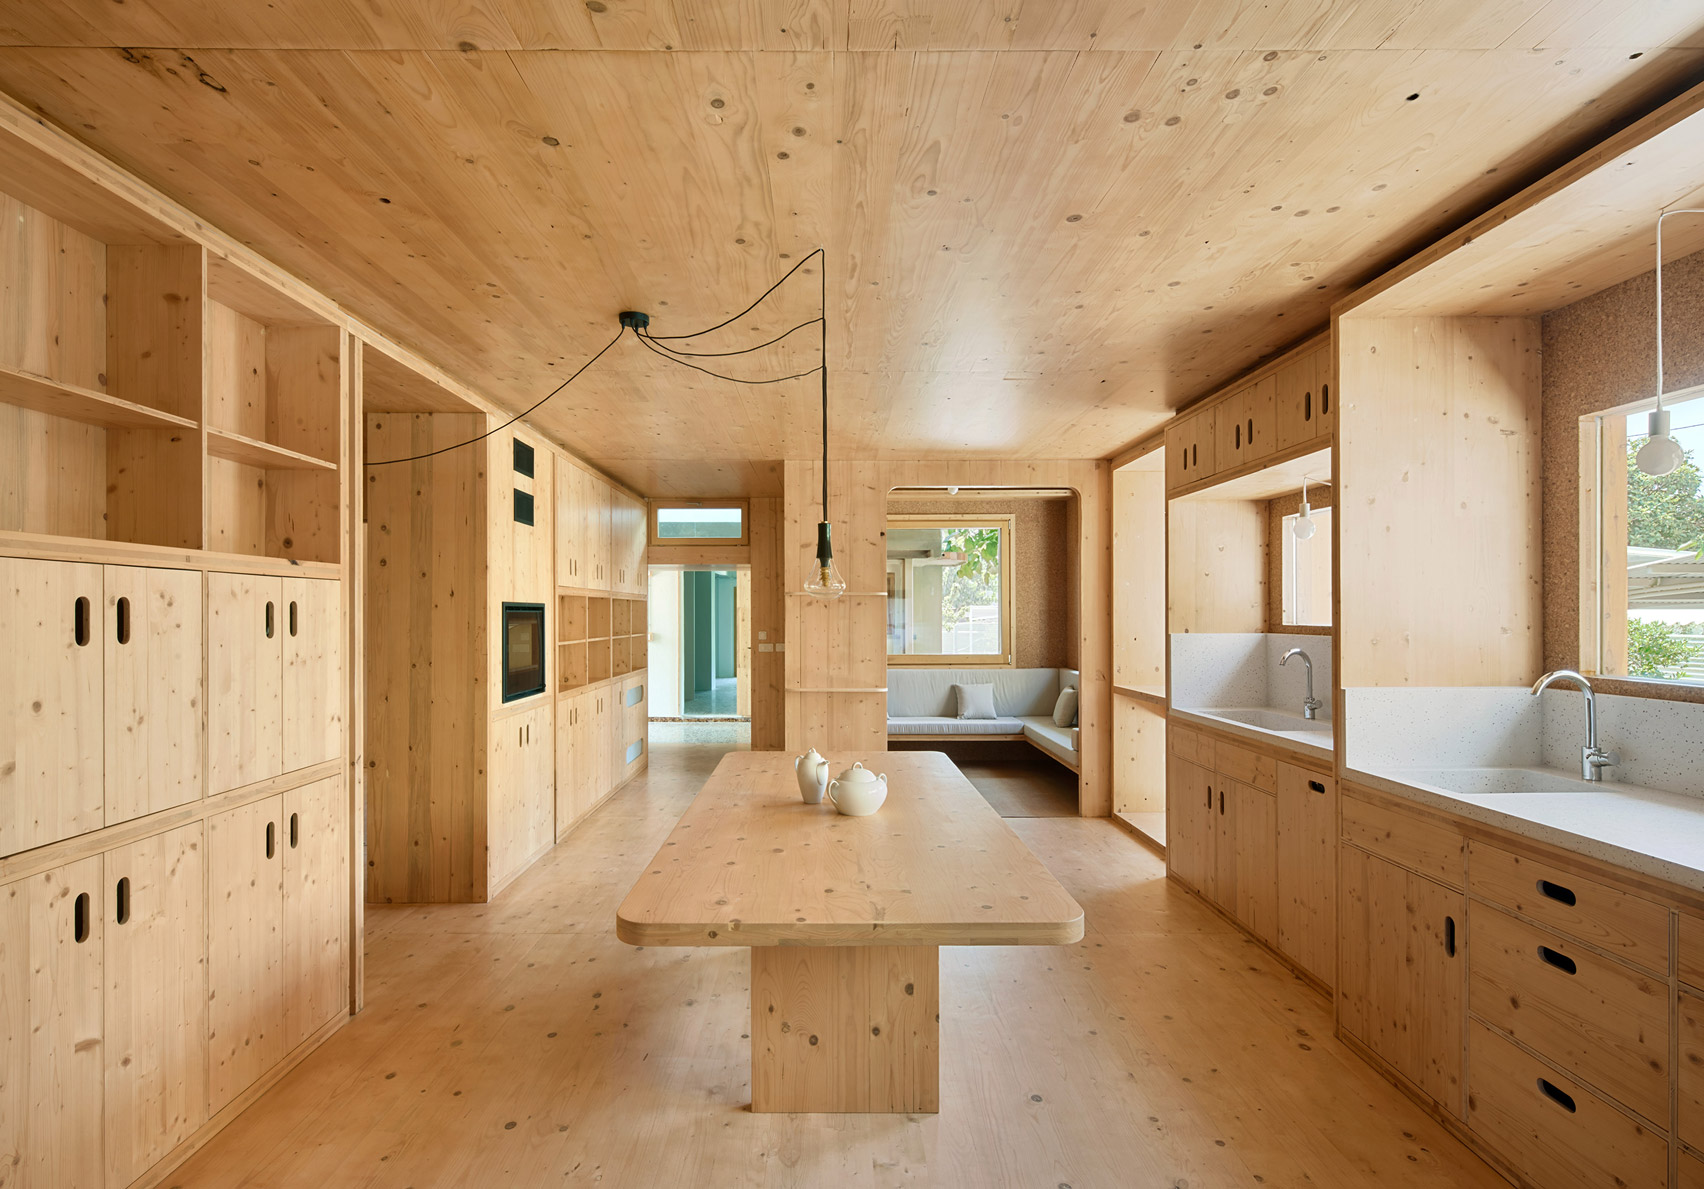 cross laminated timber is used in the multi use kitchen diner space, MAS JEC by Aixopluc